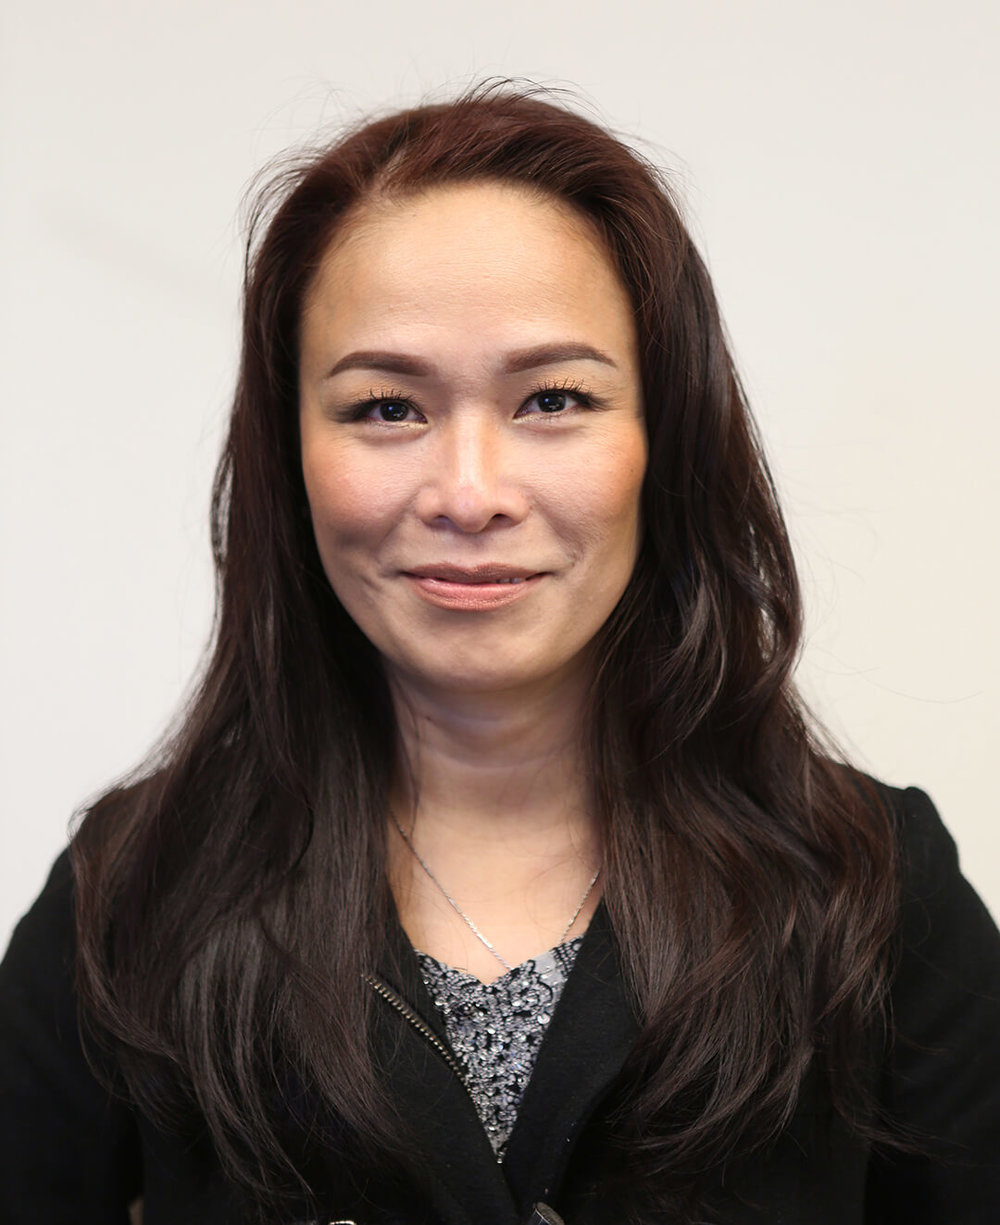 Iris Tan Controller - Iris has been a part of the RCD Team since 2005 managing the accounting department. Iris enjoys shopping and baking for her family.